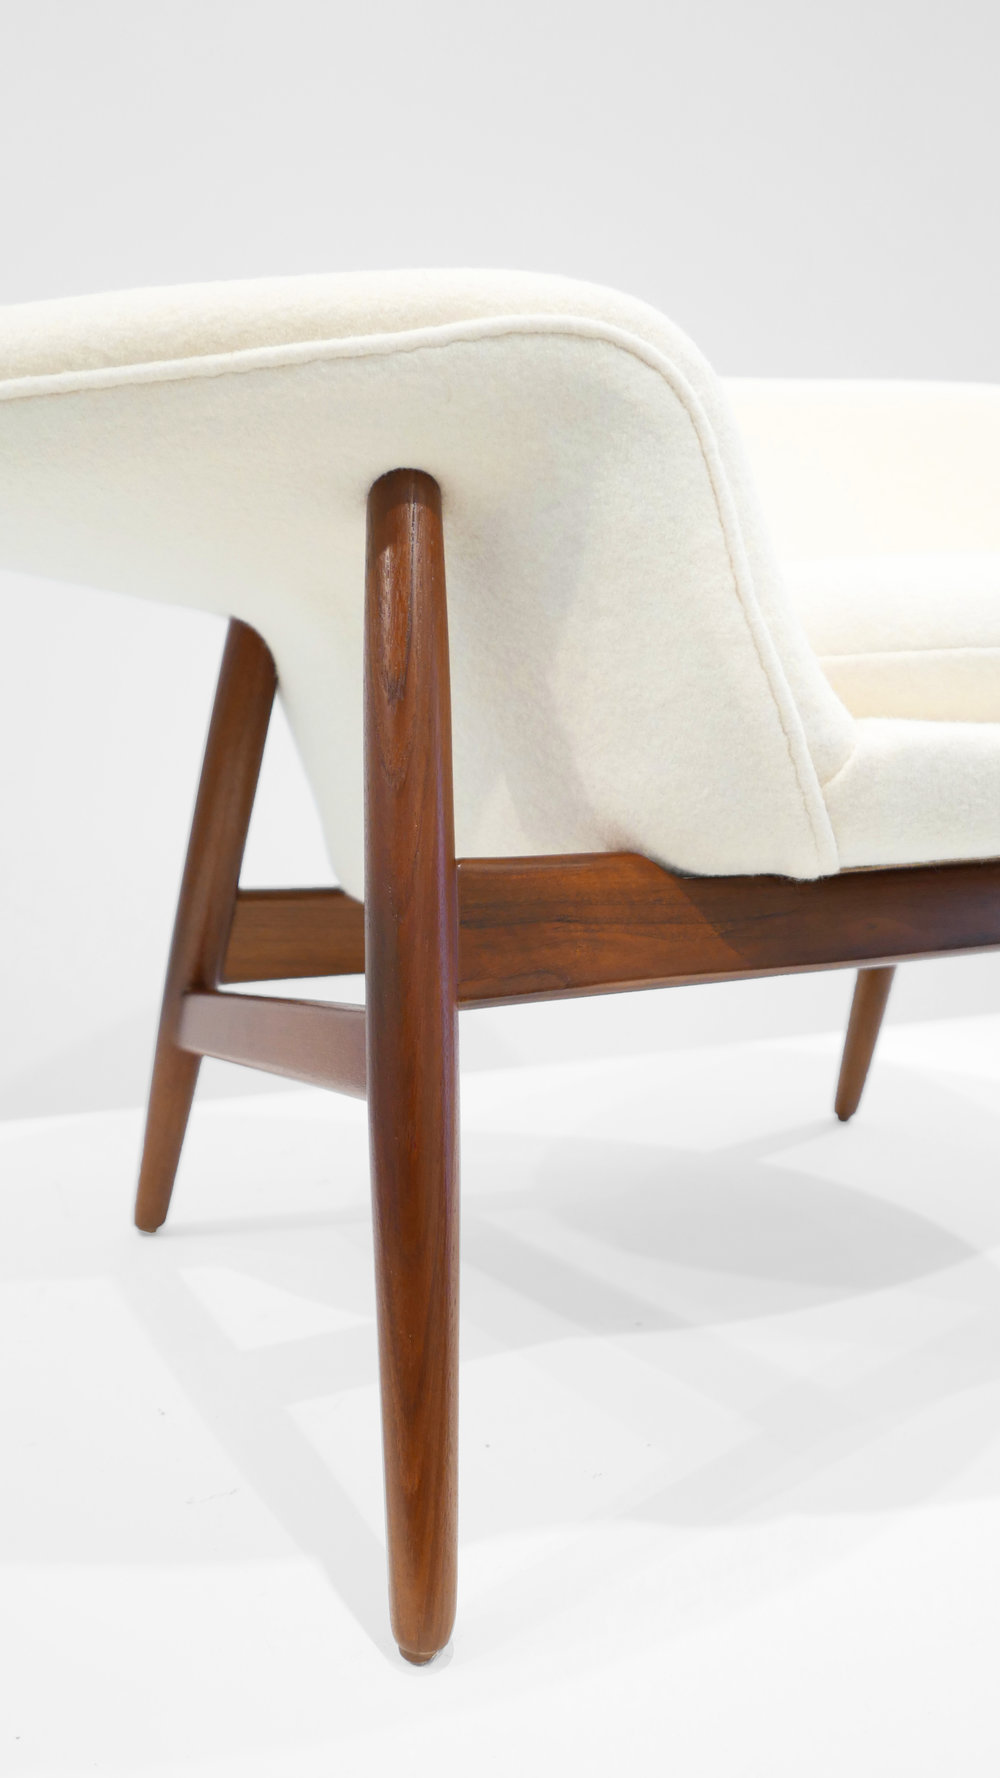 Hans Olsen %22Fried Egg%22 Chair, c. 1956, Holland & Sherry White Chamonix Boiled Wool, Teak, 26 H x 40 W x 30 D inches_3.jpg